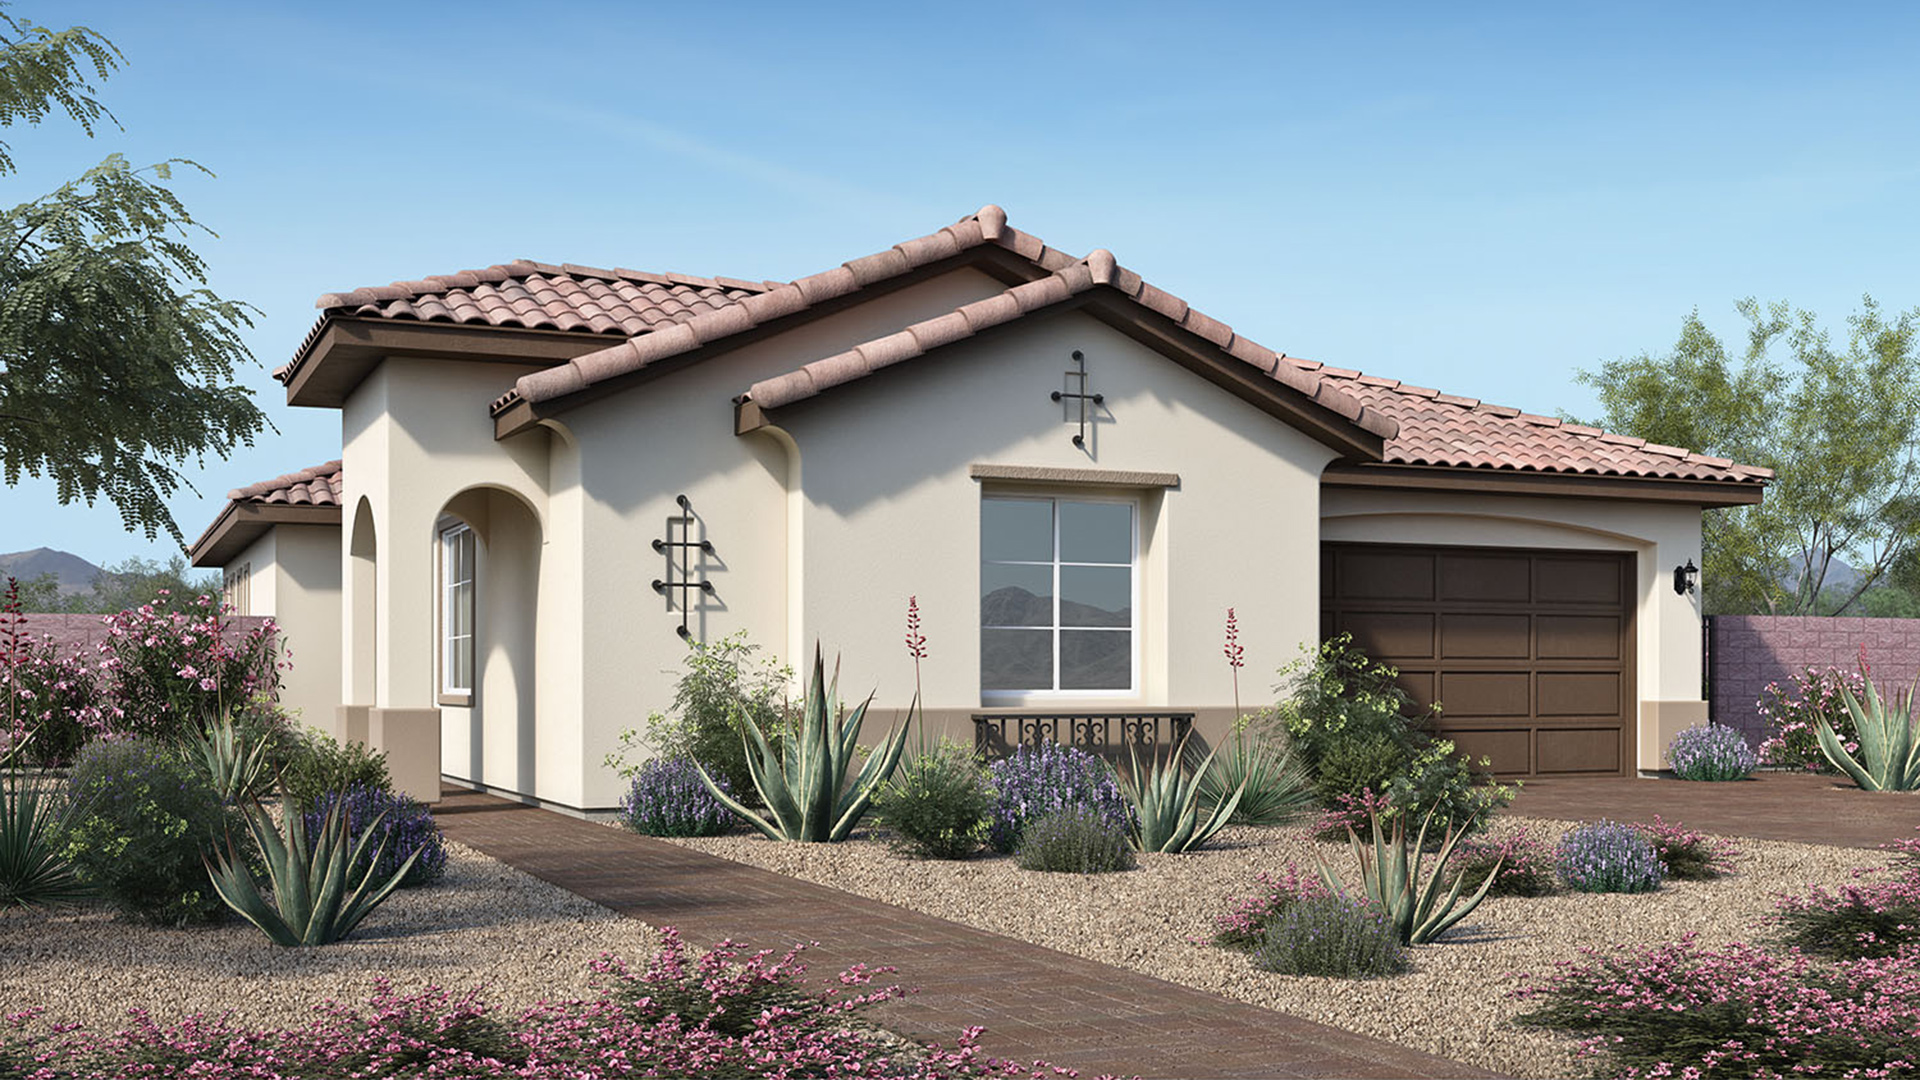 Concord at Cadence | The Edgewood (NV) Home Design